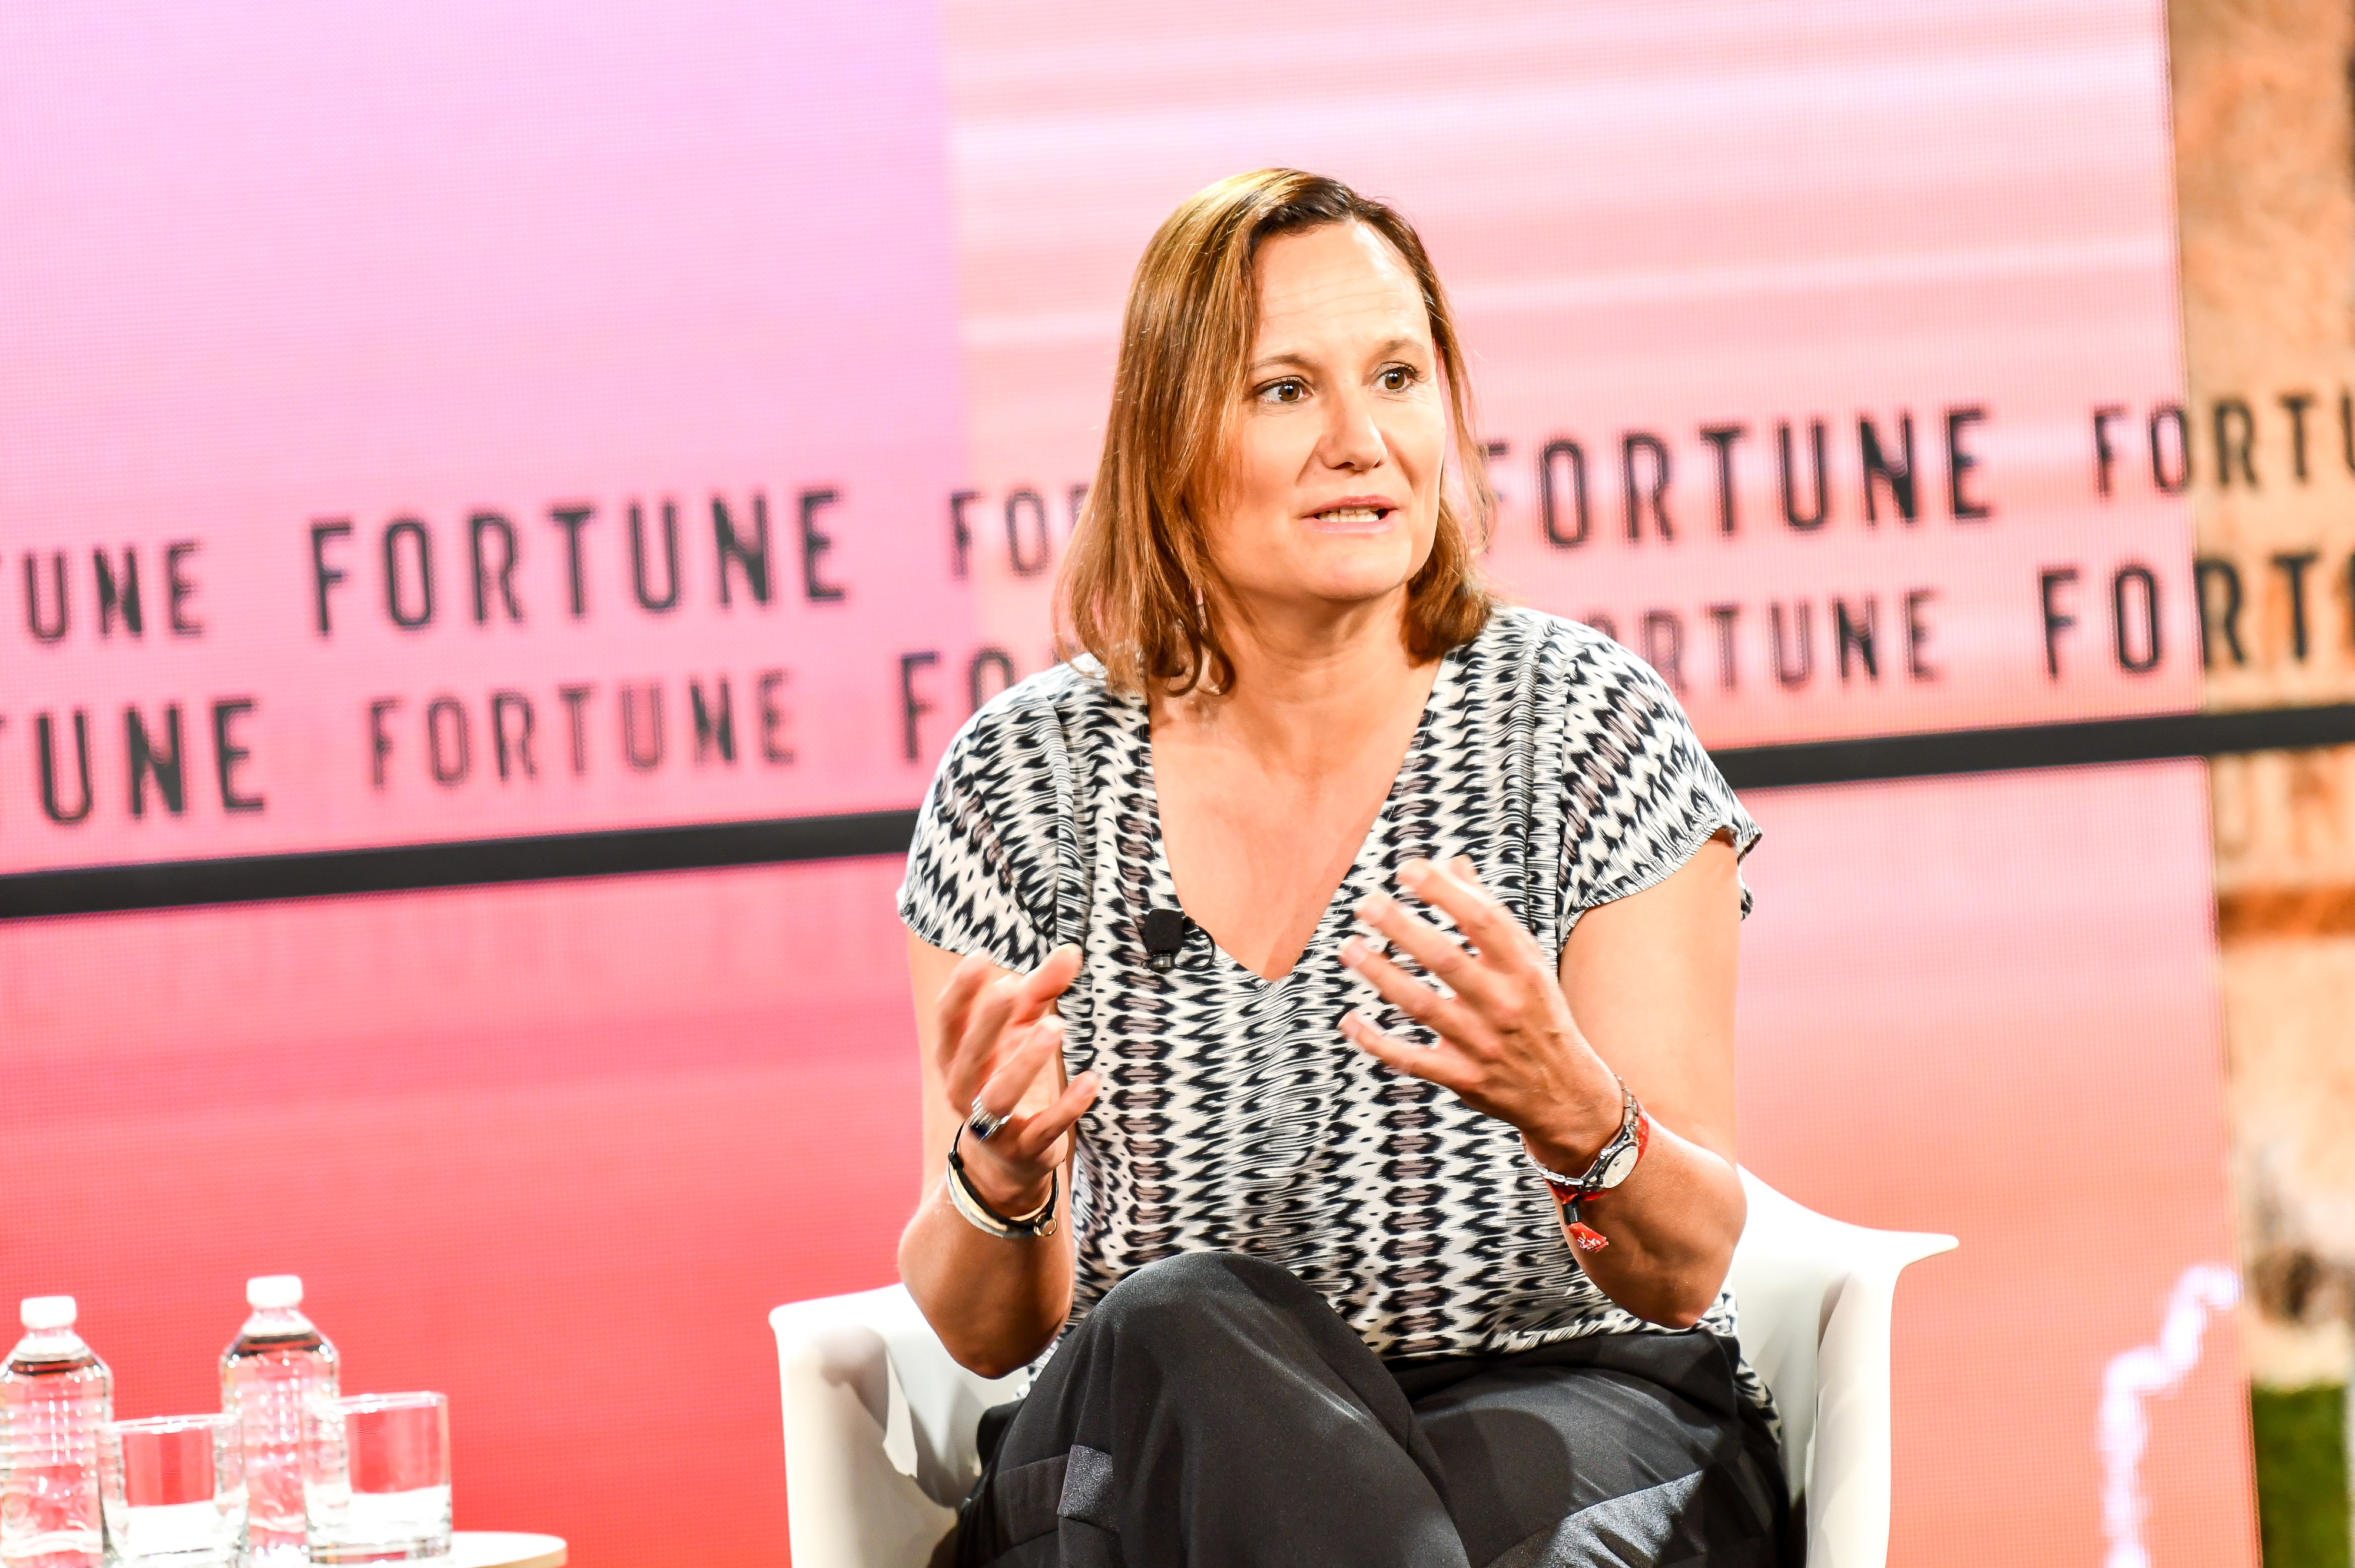 Booking.com CEO Gillian Tans explained why her parent company invested in Didi at Fortune Brainstorm Tech.